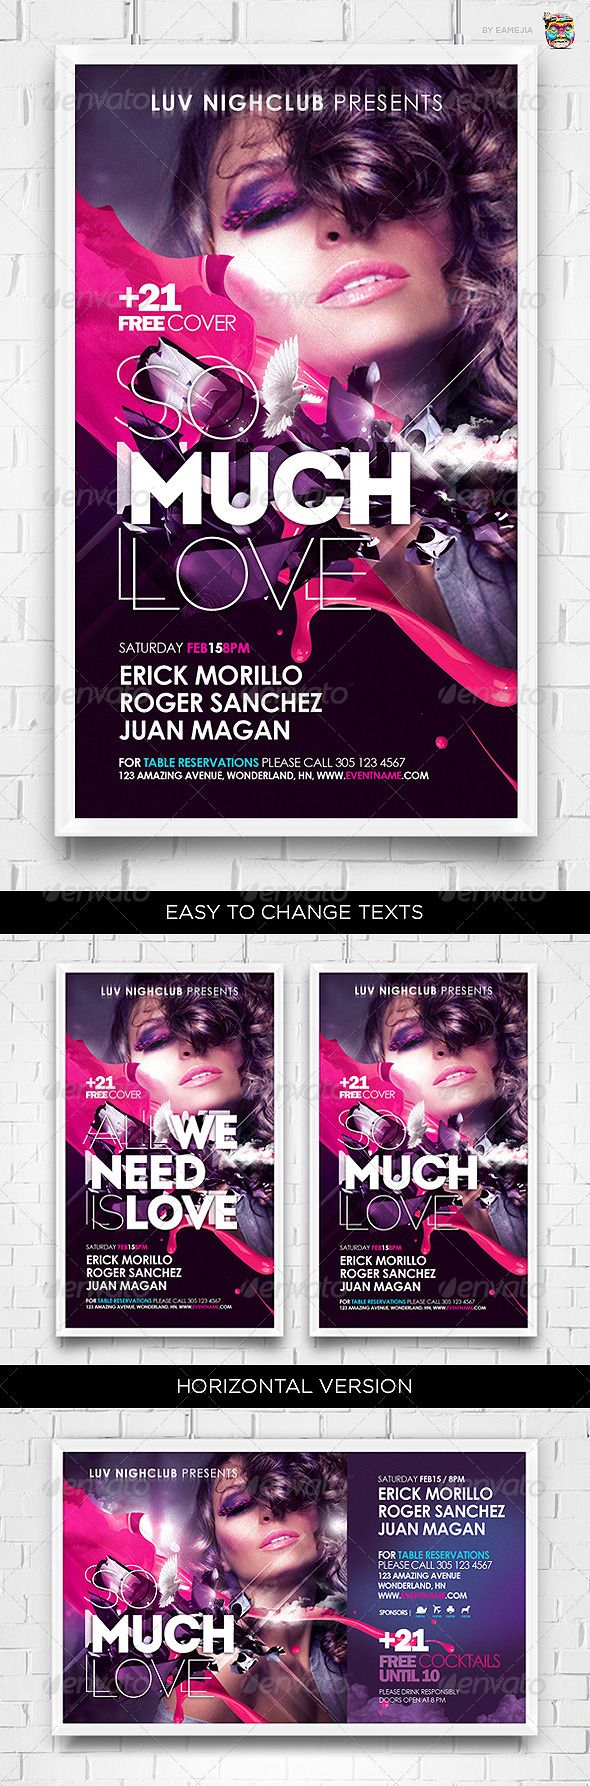 best images about flyers psd flyer templates so much love flyer template